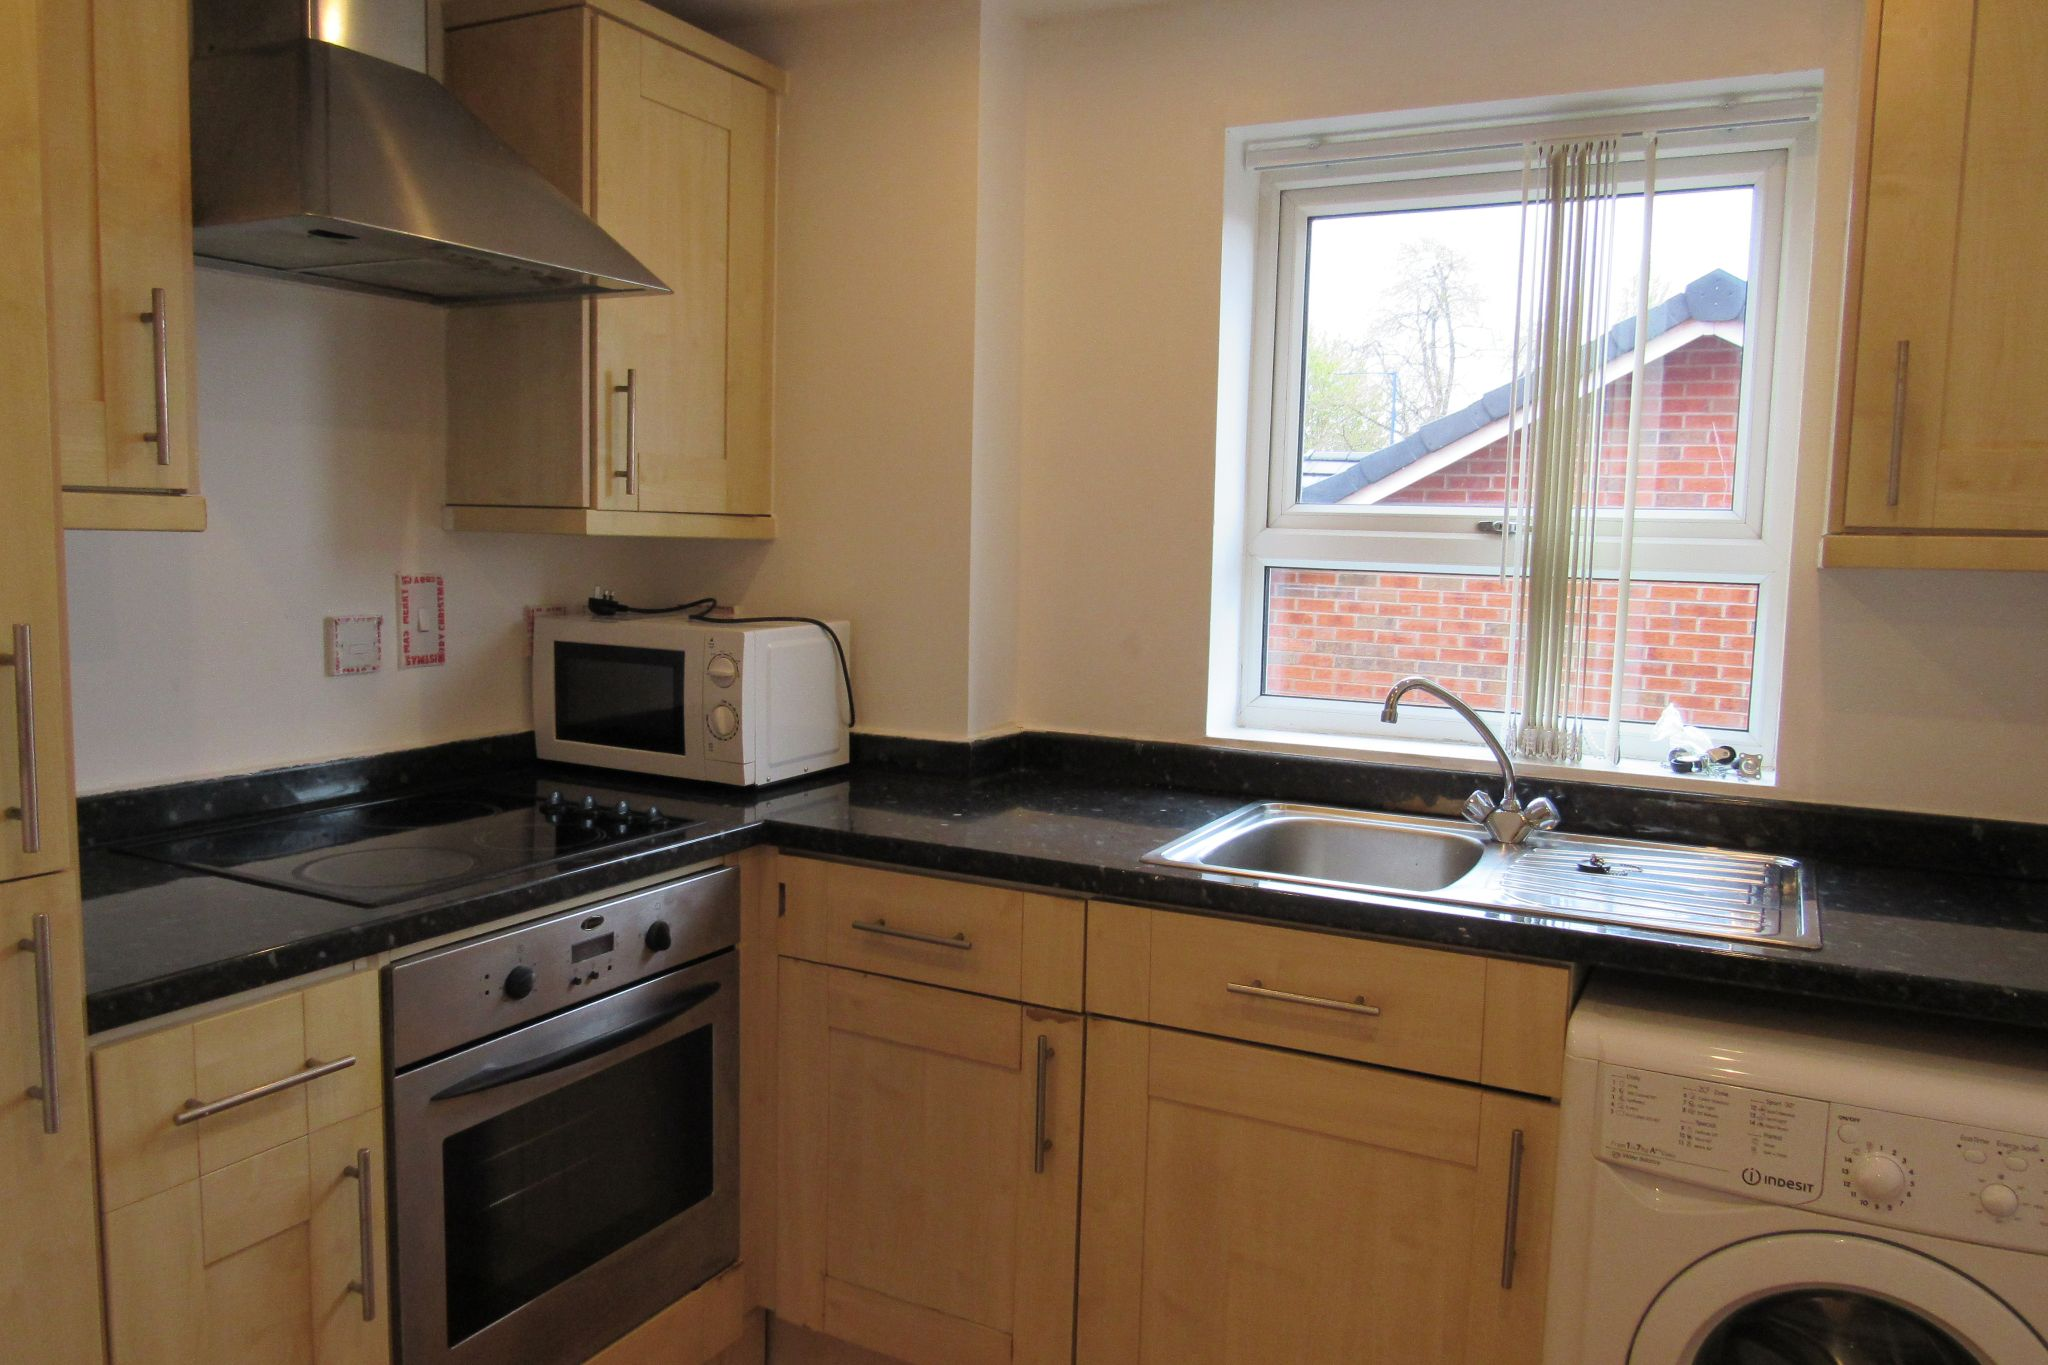 2 bedroom apartment flat/apartment SSTC in Manchester - Photograph 6.